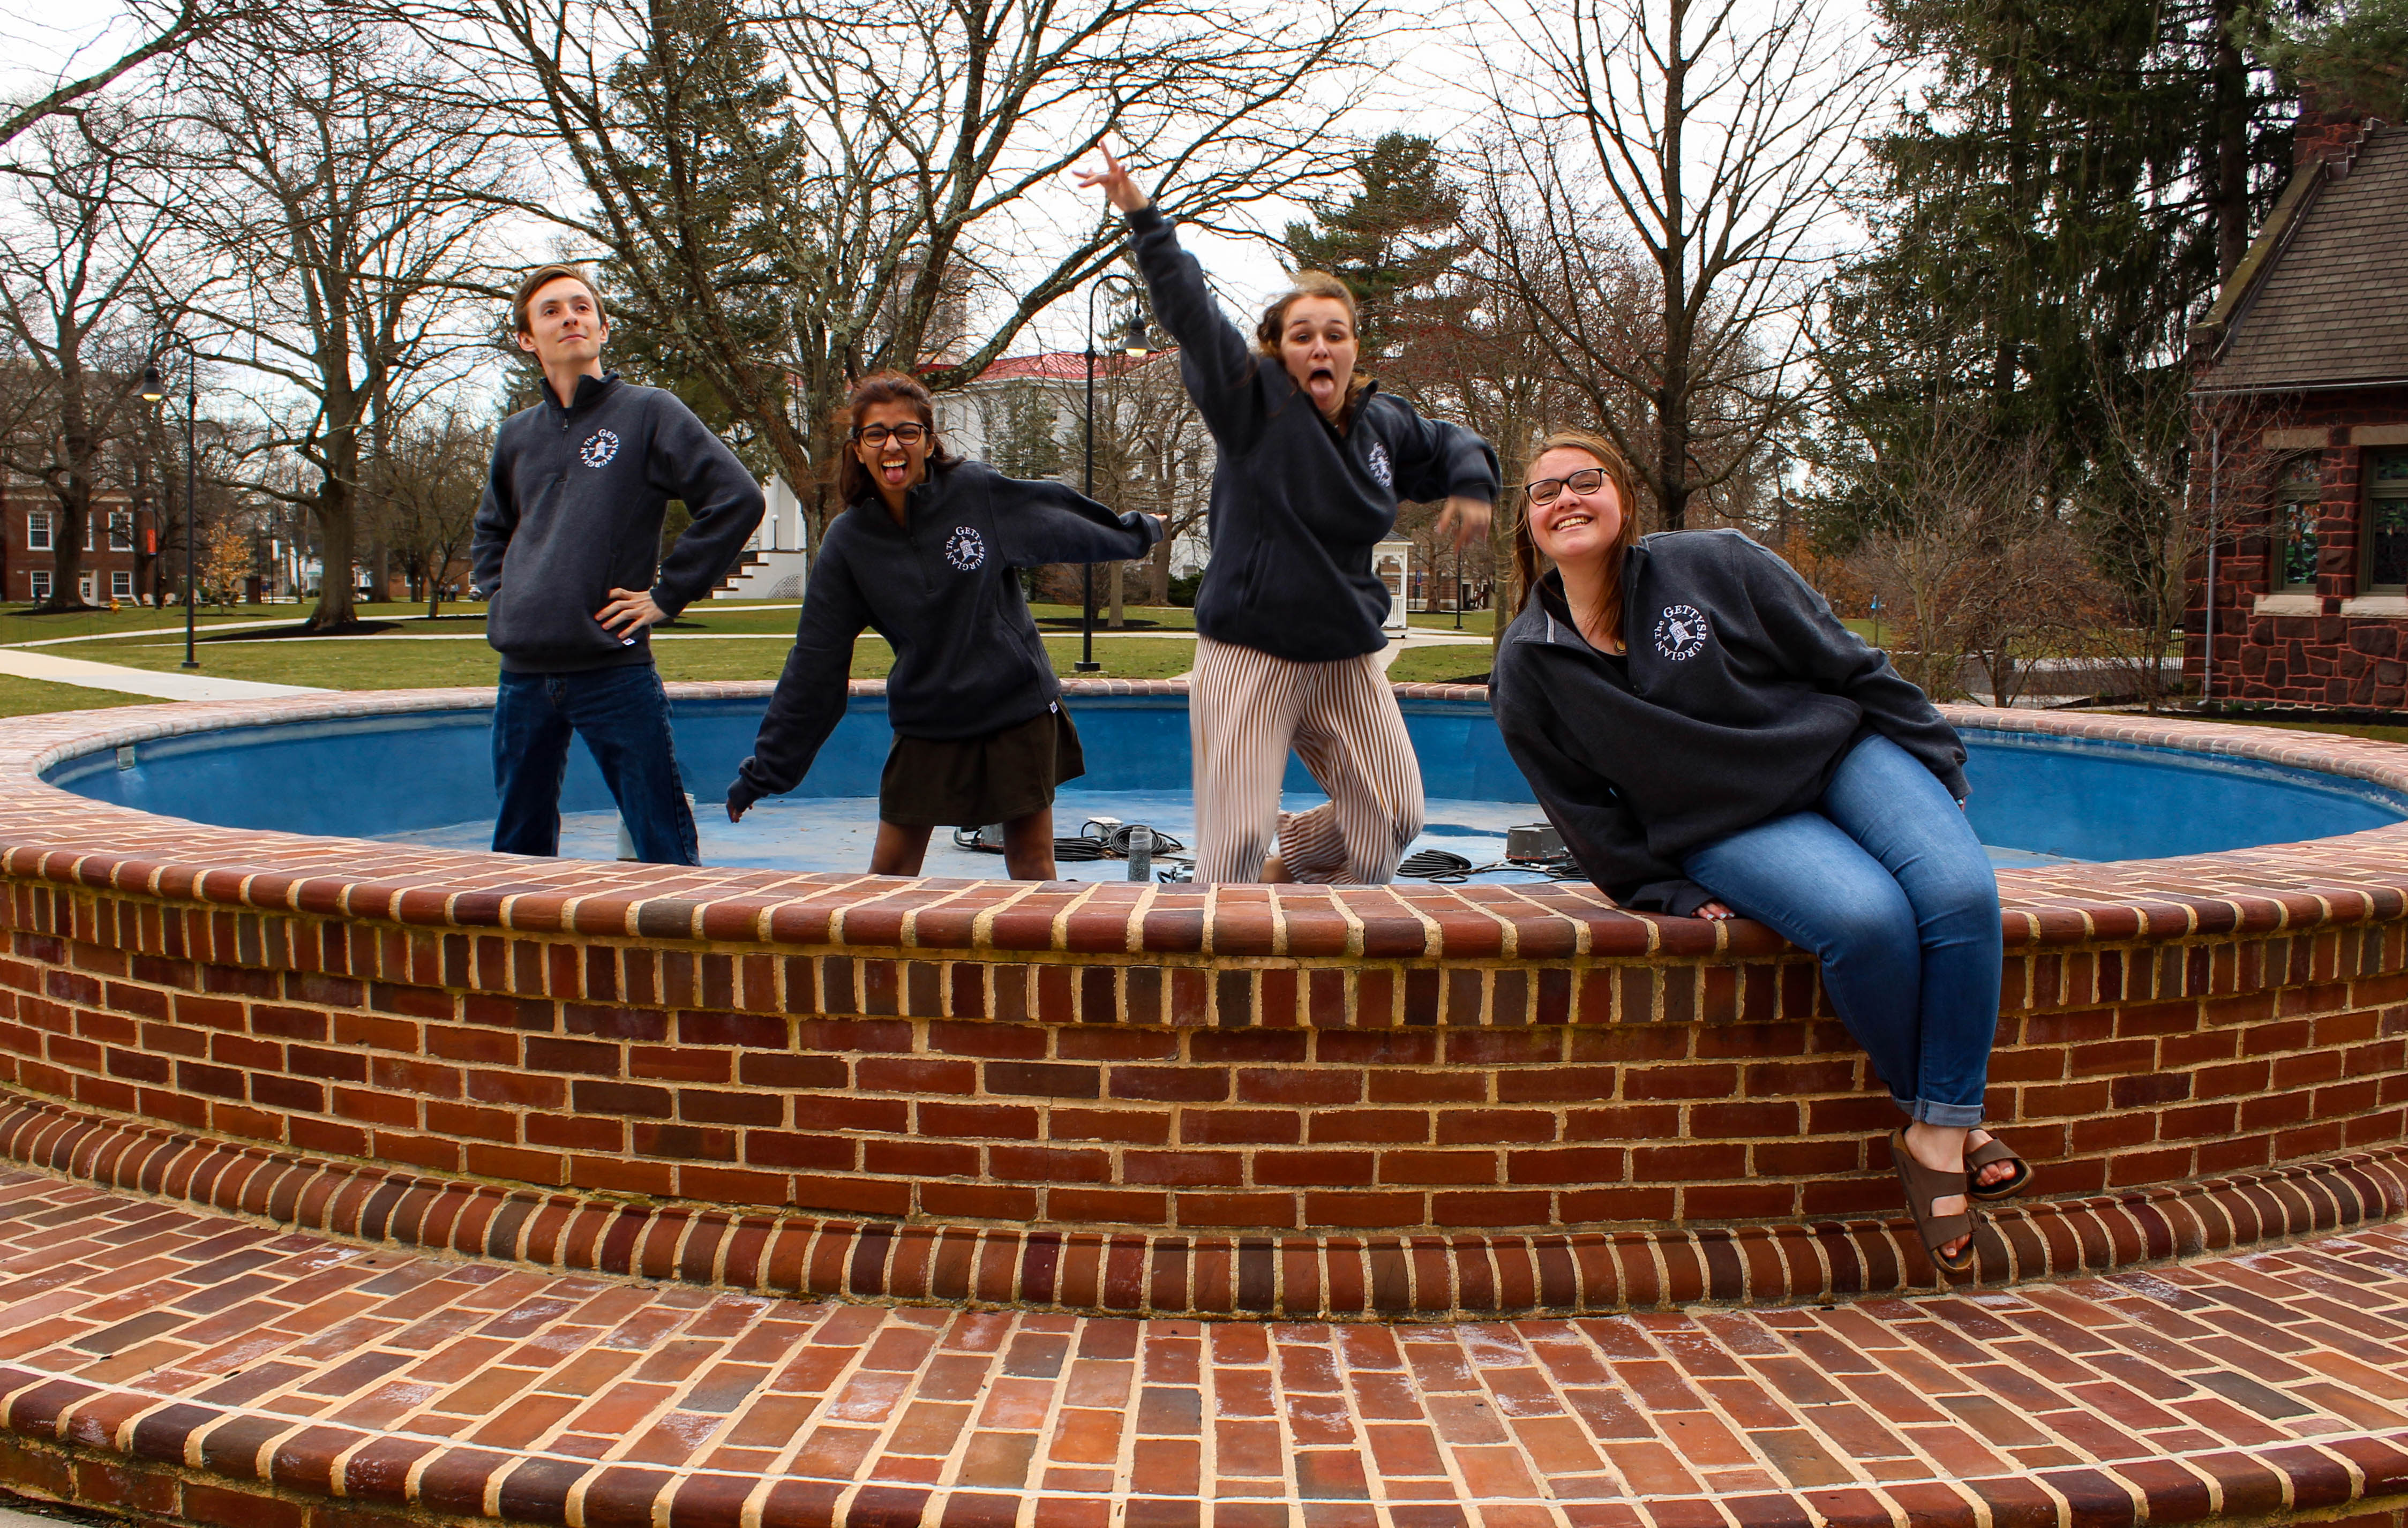 Gettysburgian Editors were found in the fountain and recieved points for their wrongdoing (Photo Mary Frasier/The Gettysburgian).